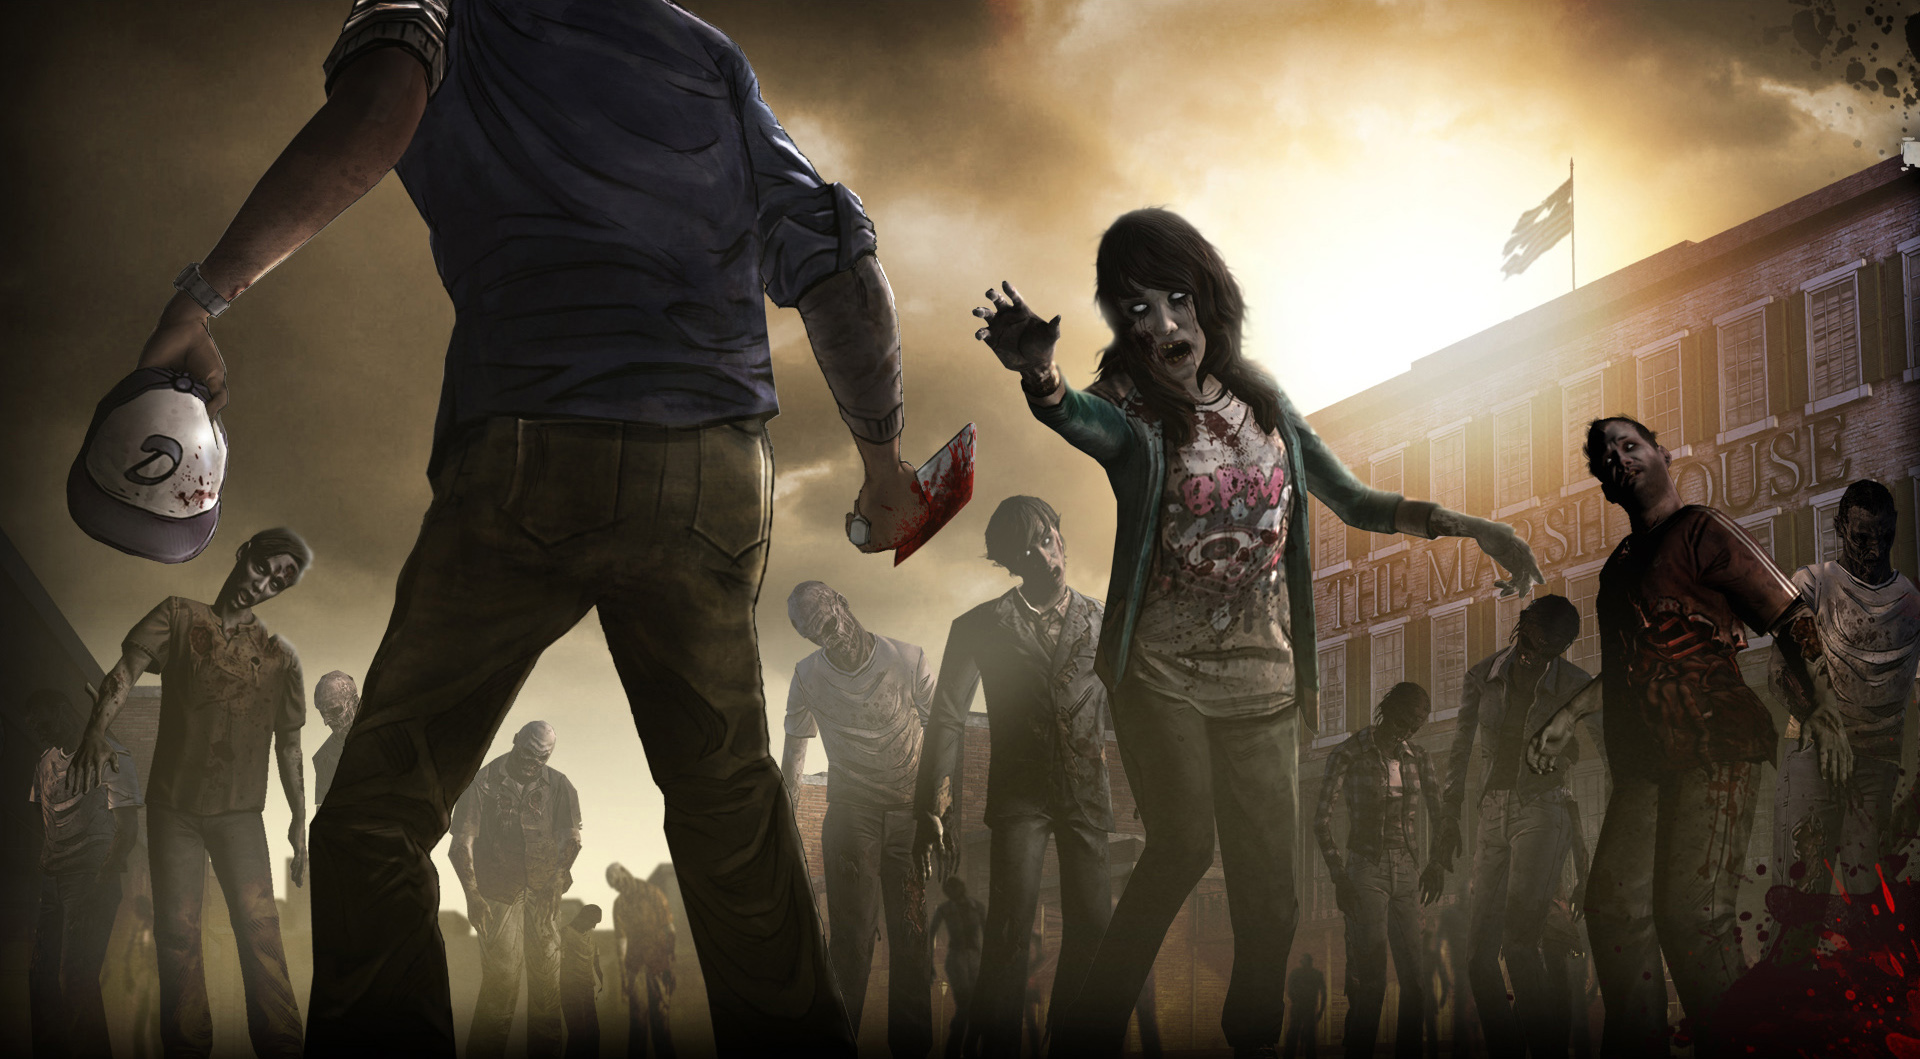 Walking Dead Wallpapers For Android: Walking Dead IPhone Wallpaper